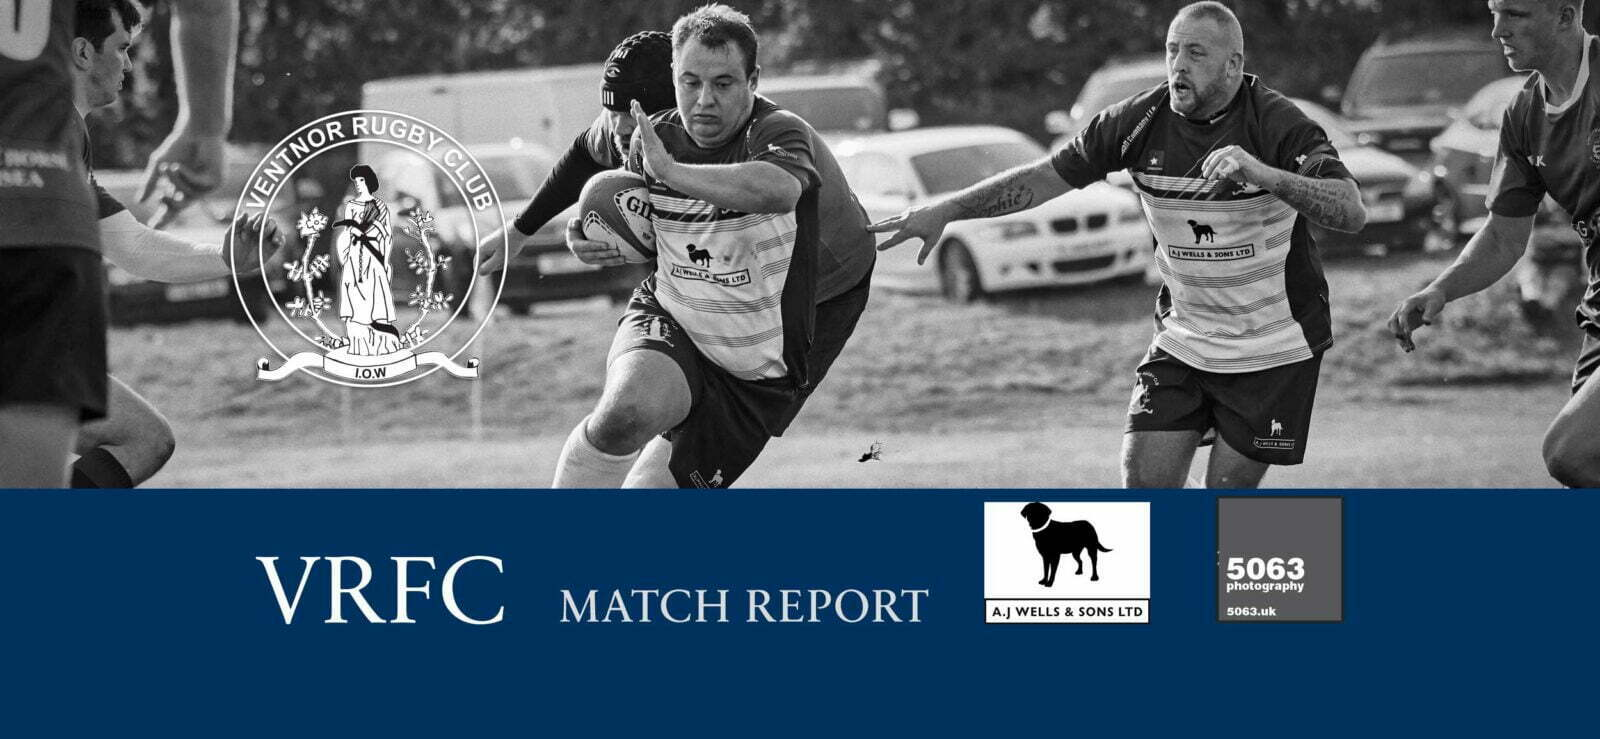 Match-report-Fareham-Heathens-1st-XV-v-Ventnor-1st-XV-21102017-slider-a